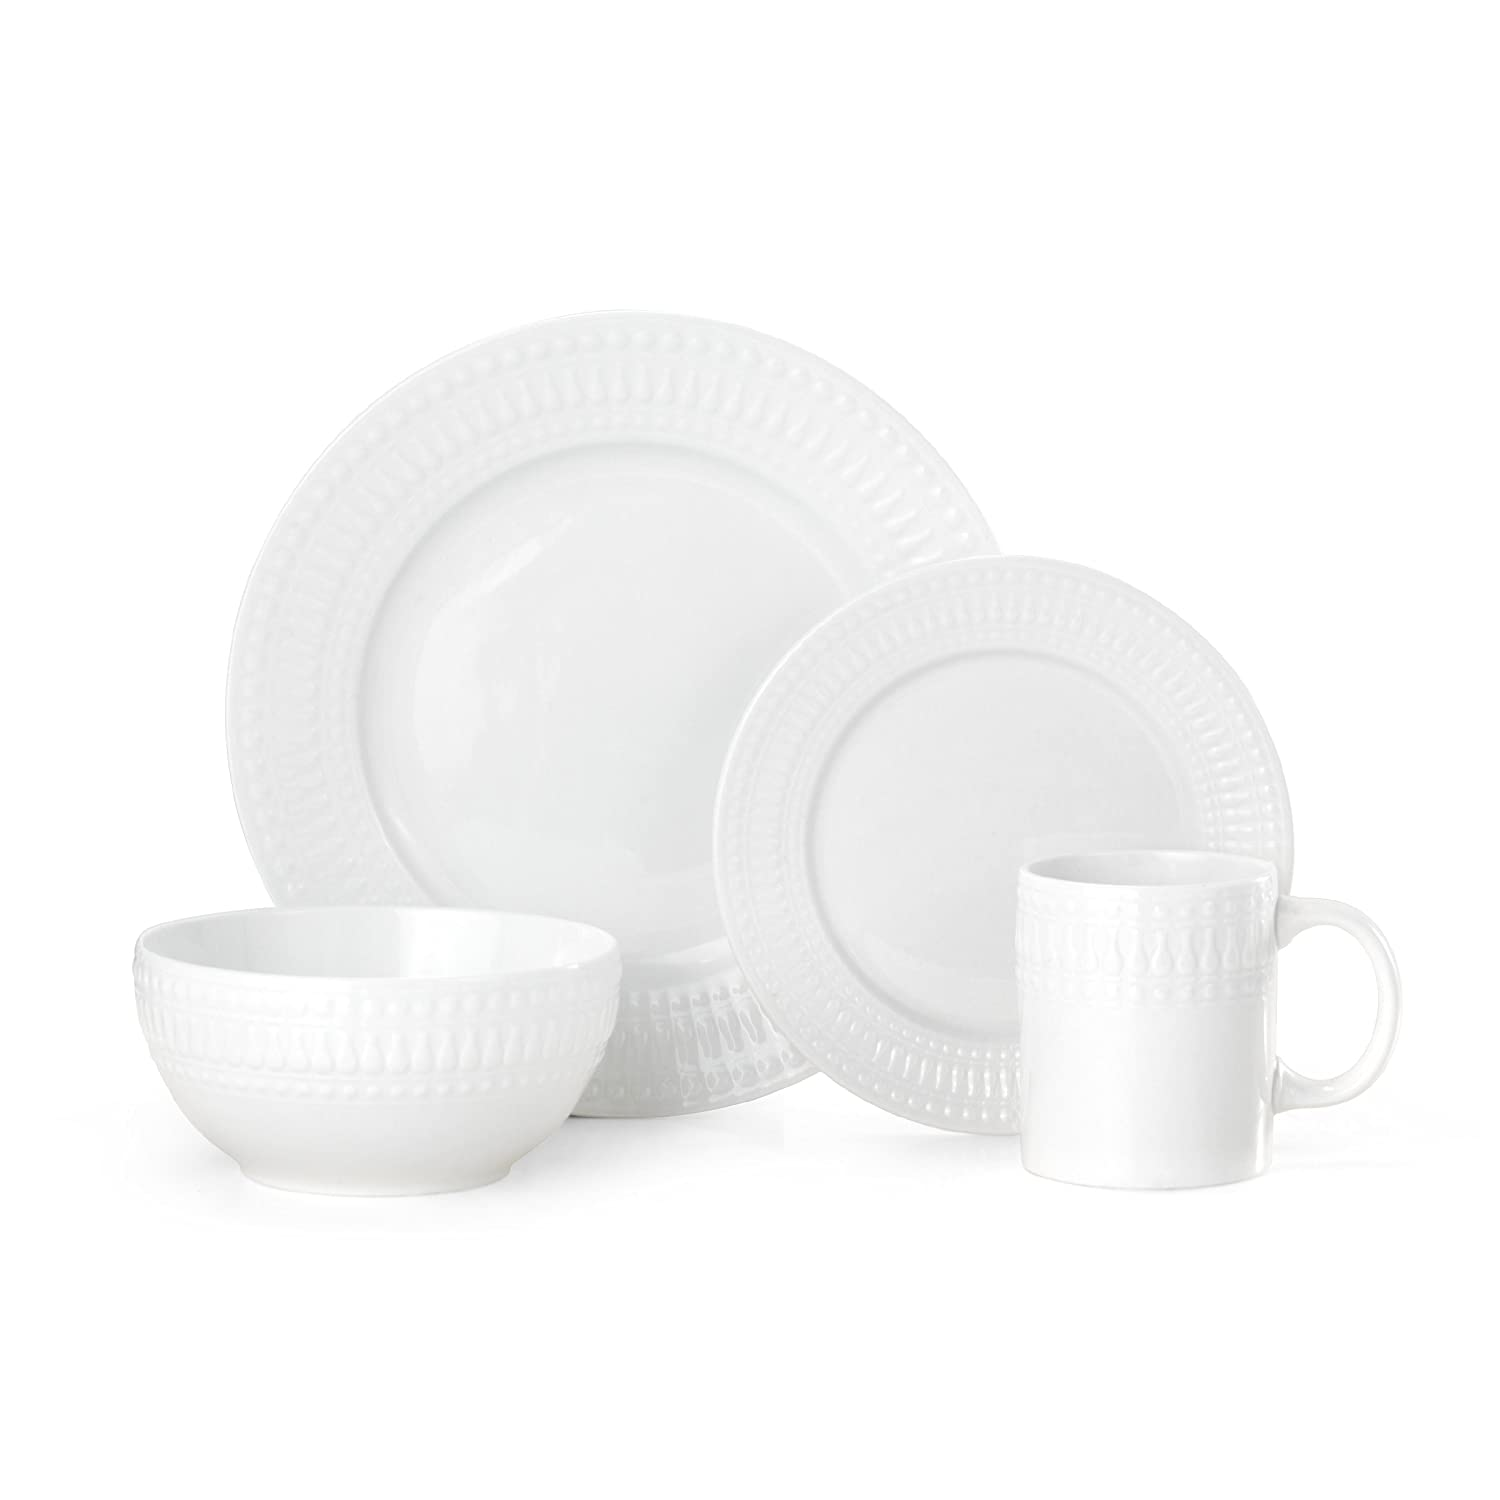 Pfaltzgraff Cassandra 16-Piece Porcelain Dinnerware Set, Service For 4